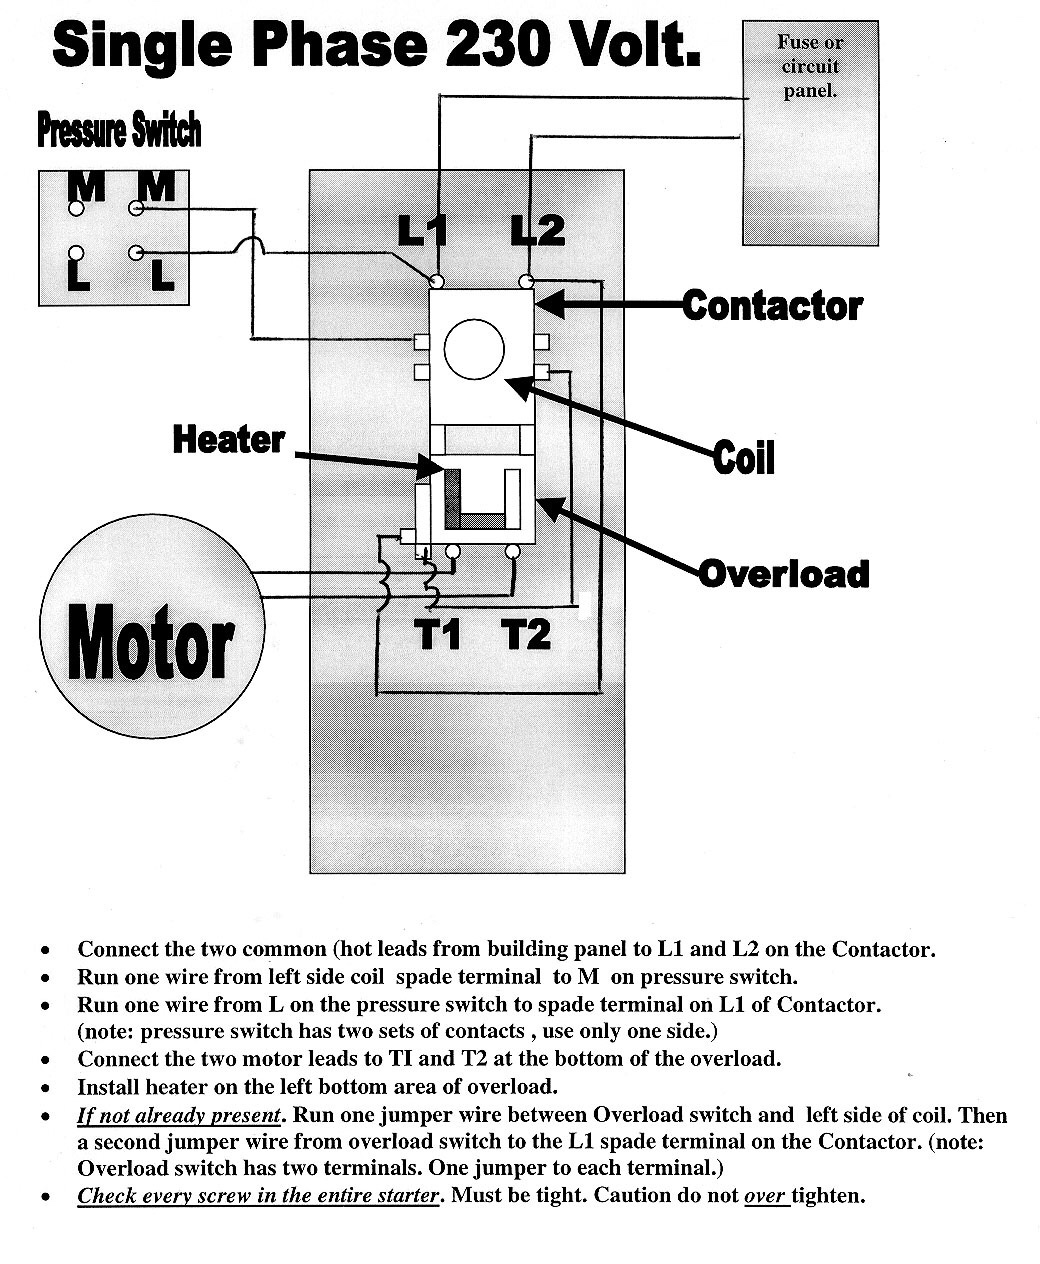 3ba939427a6e7206e9573f95da040012?resize=665%2C808 im trying to wire a dayton 2x440a drum switch foward and reverse 220 volt switch wiring diagram at soozxer.org